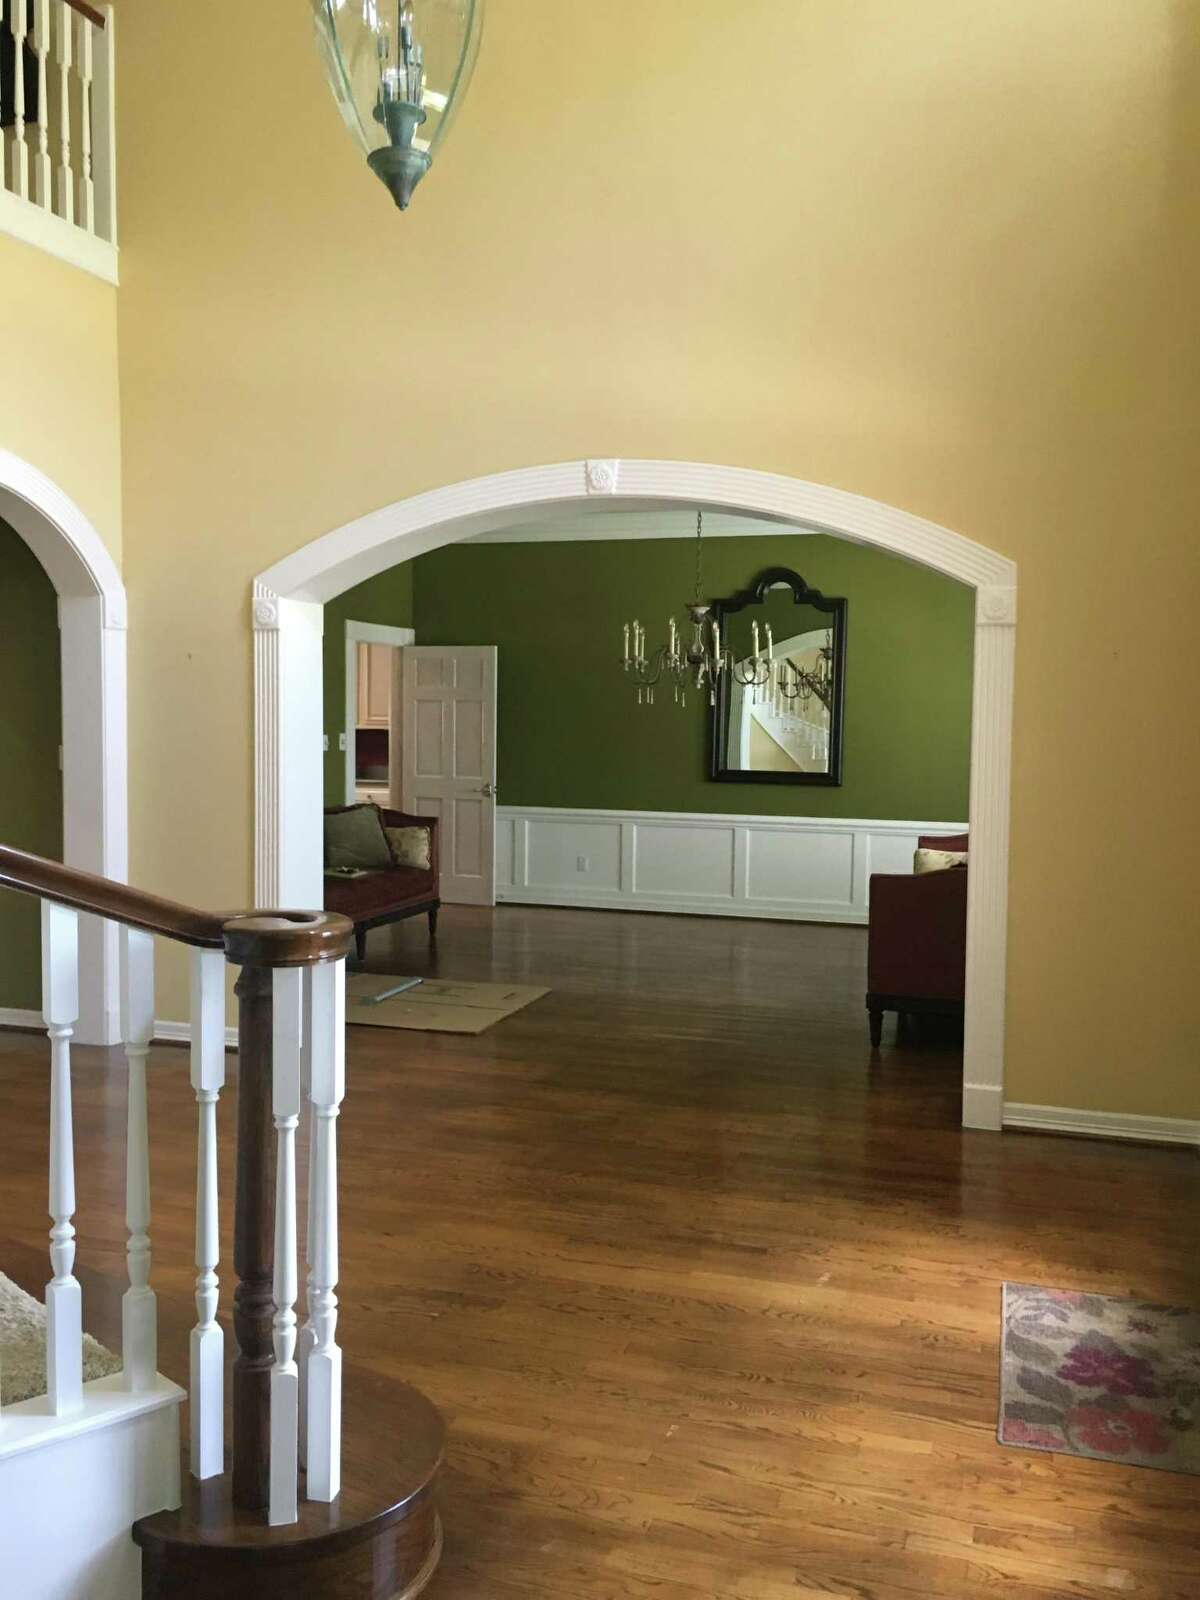 Before: A peek into the dining room shows olive green walls.